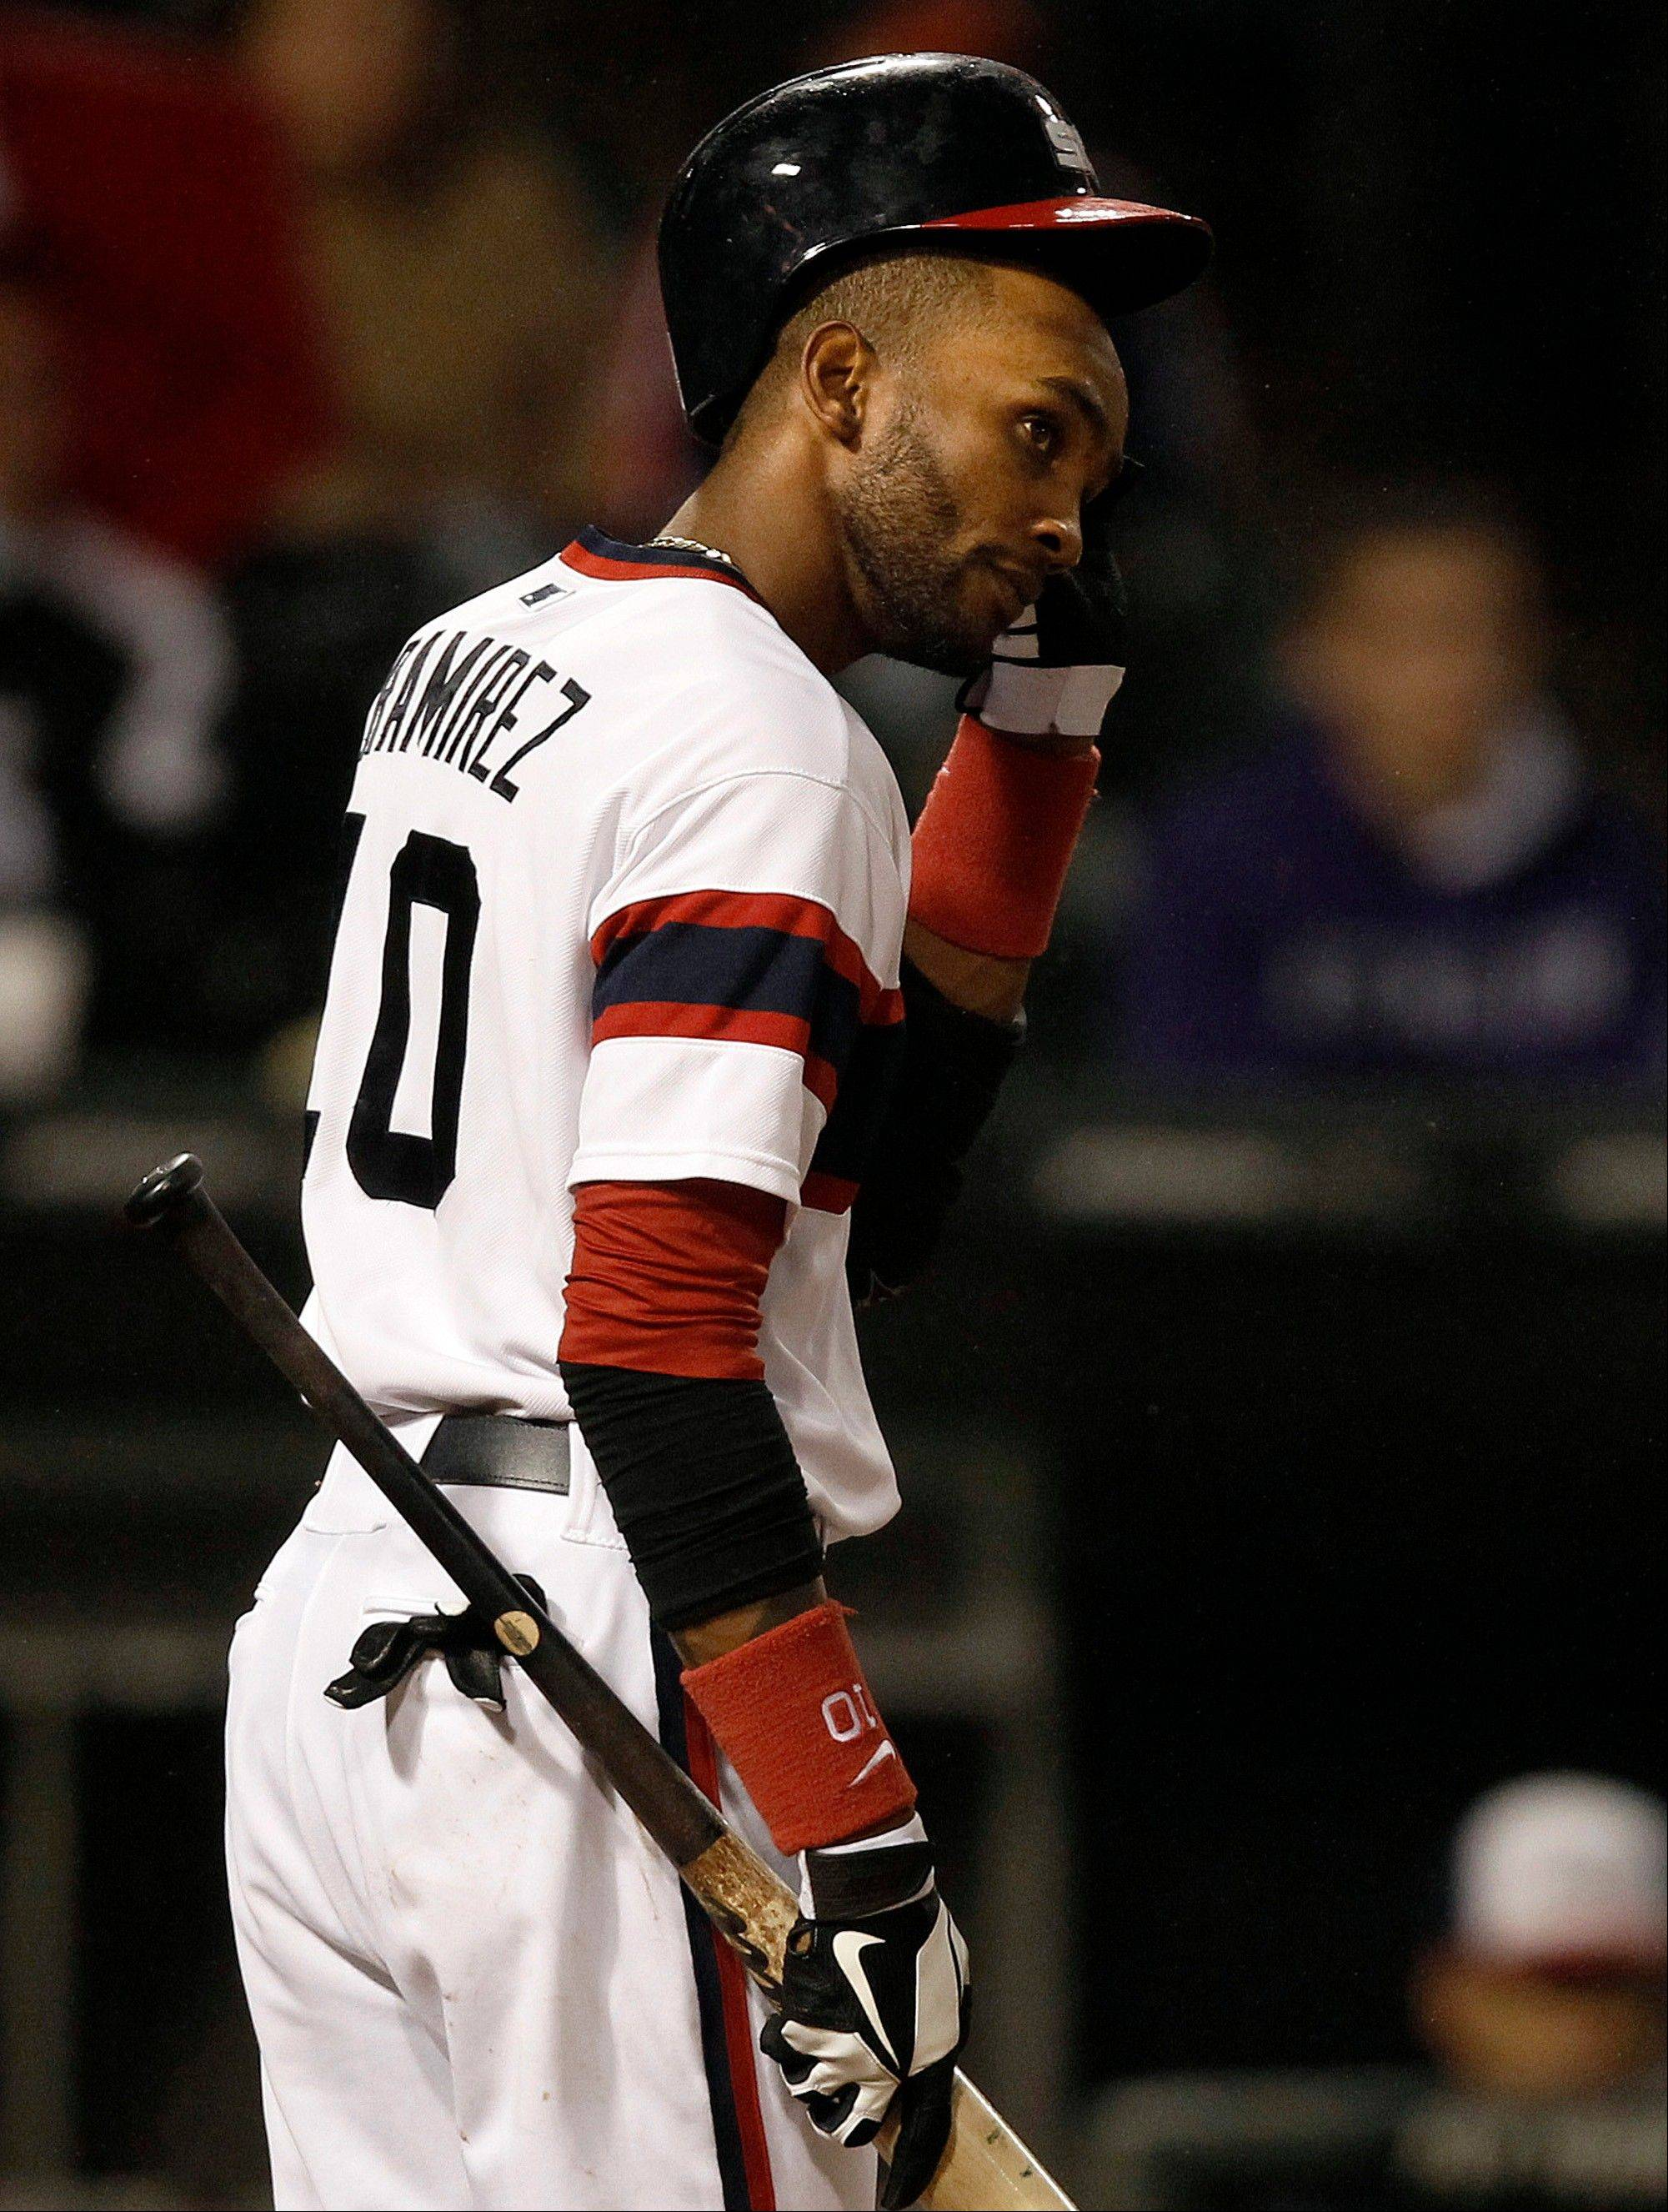 The White Sox�s Alexei Ramirez removes his helmet after striking out swinging during the sixth inning of a baseball game against the Cleveland Indians, Sunday, Sept. 15, 2013, in Chicago.